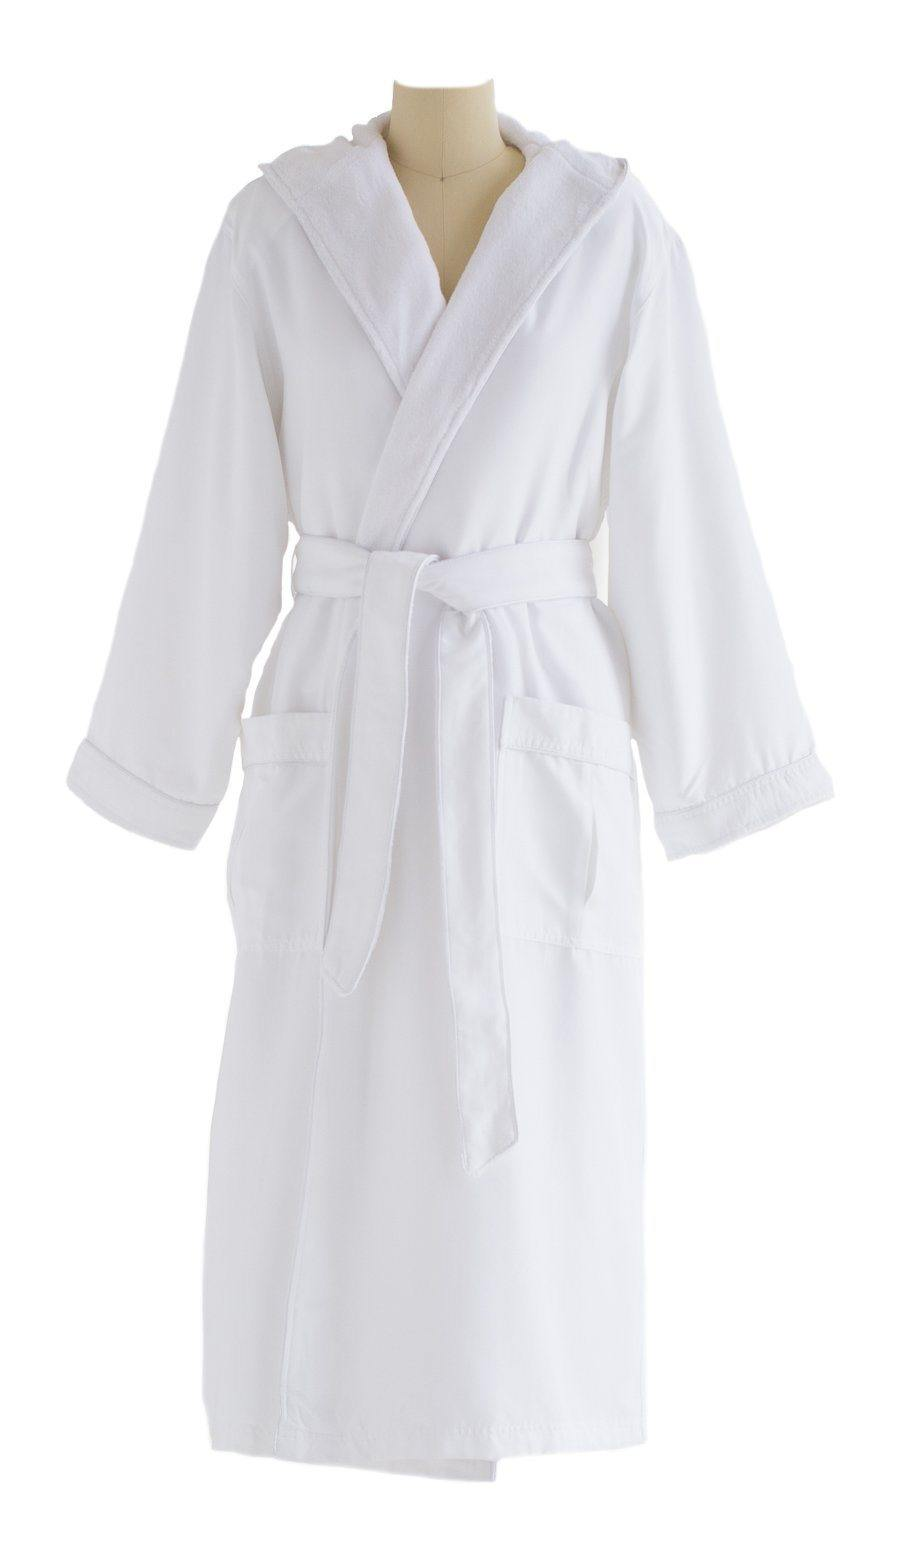 Microfiber Plush Robe With A Hood | Style: MPRH300 Front White